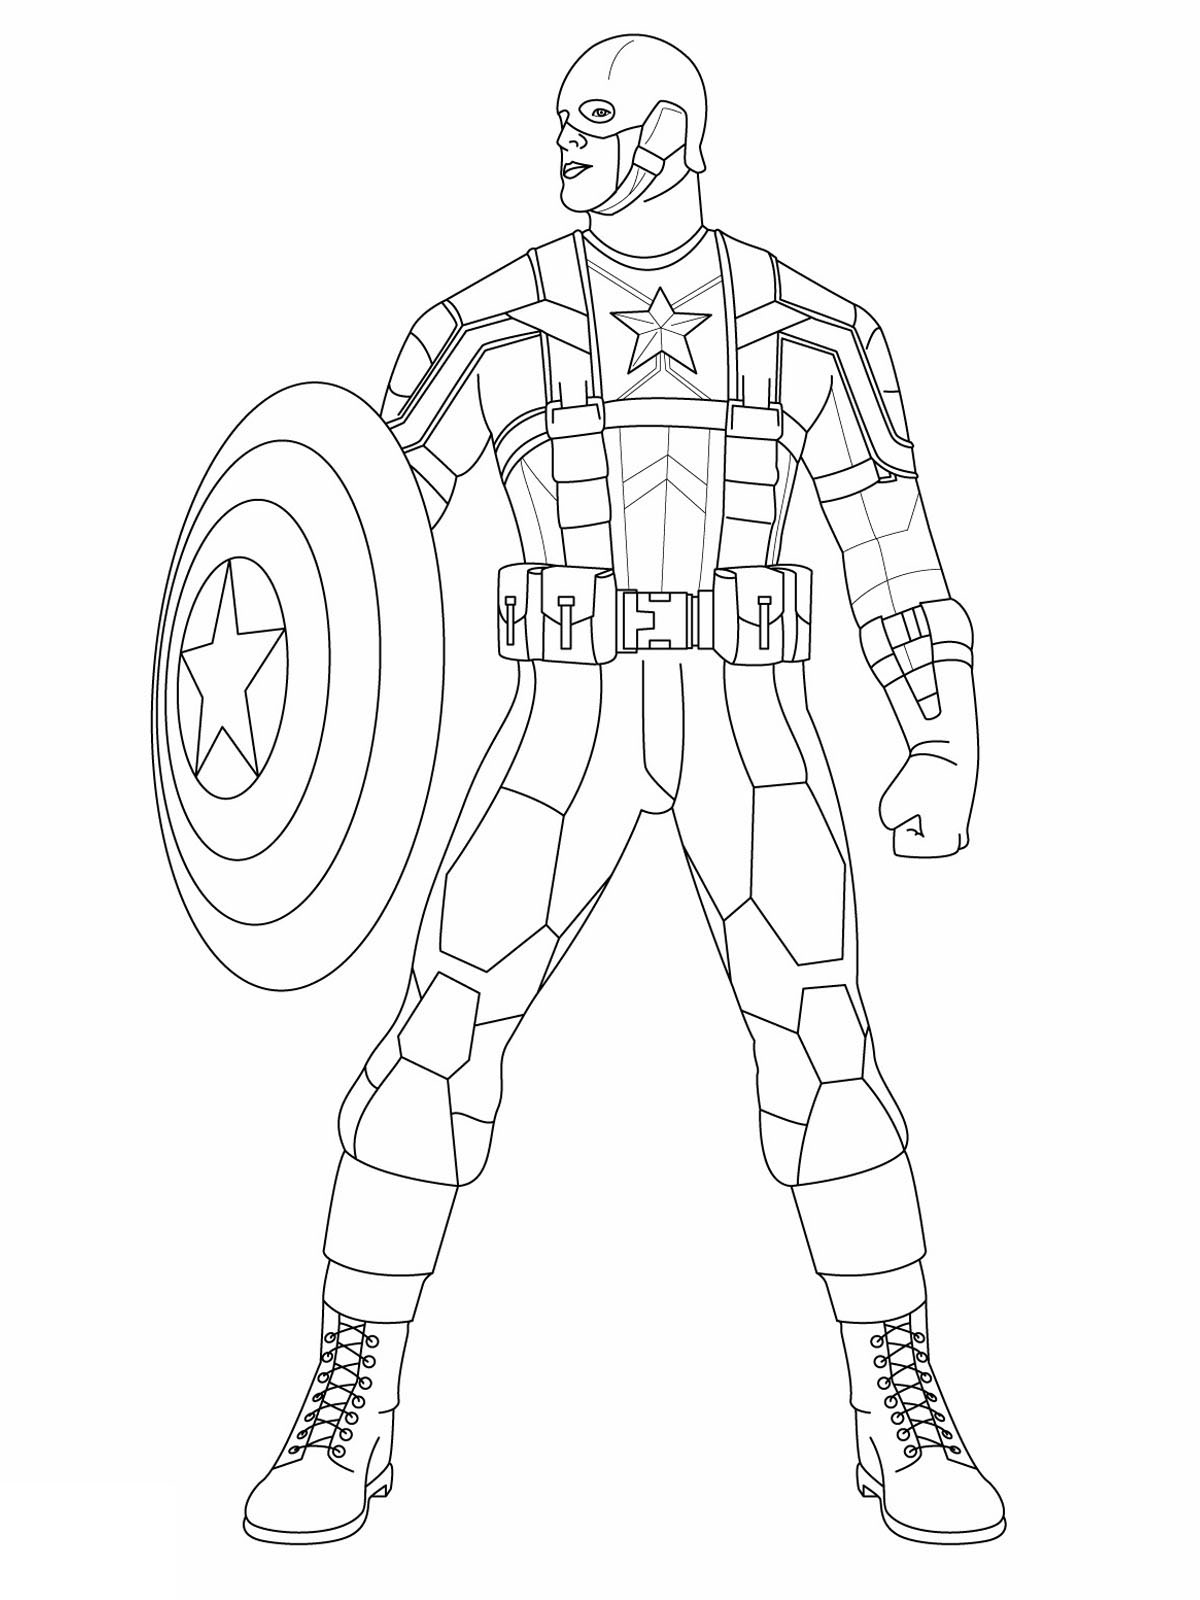 Easy free Captain America coloring page to download